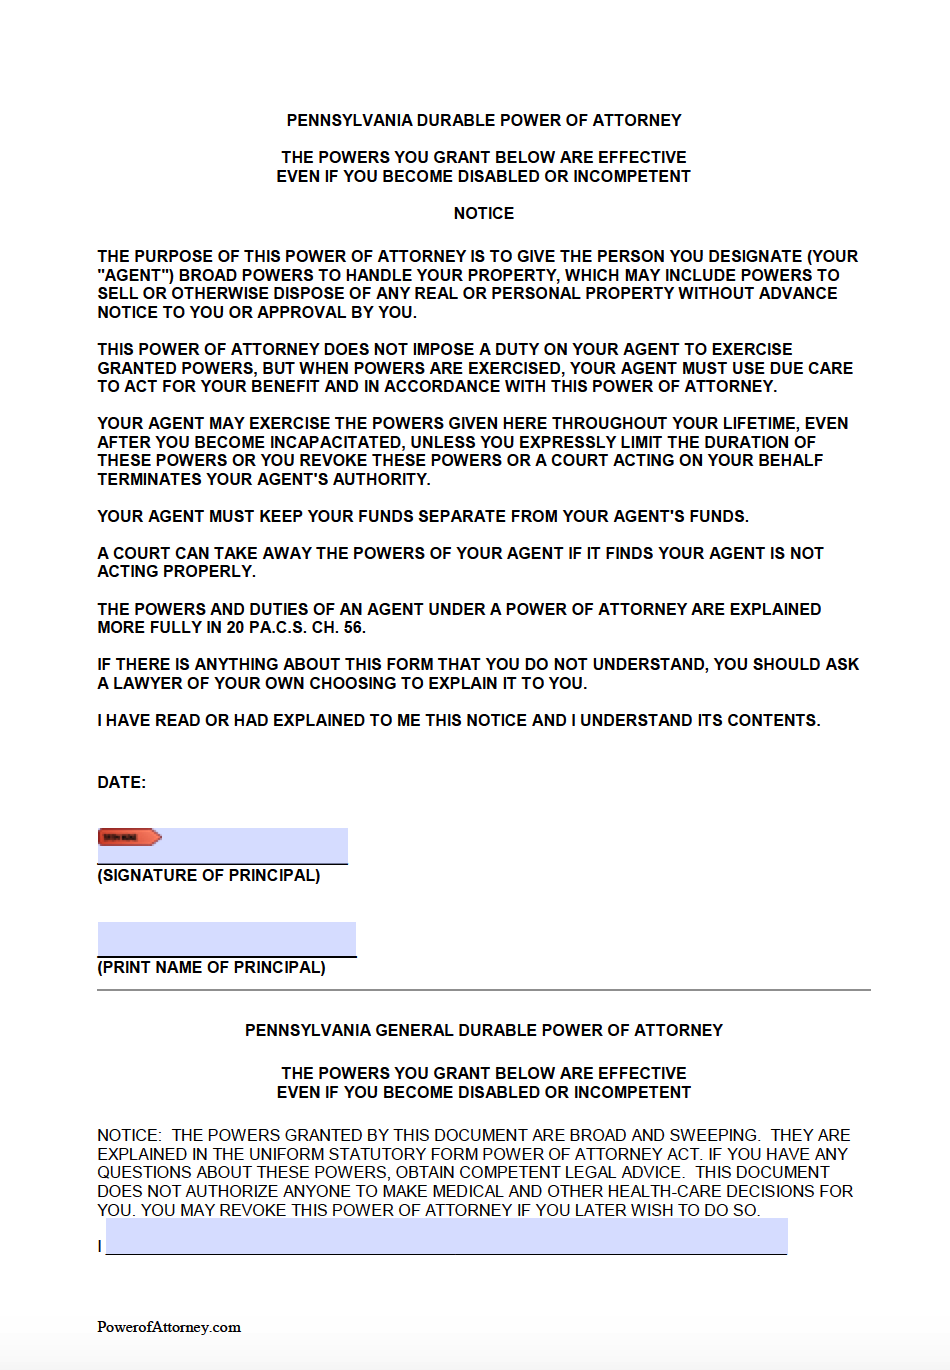 power of attorney form explanation  Free Durable Power of Attorney Pennsylvania Form – PDF & Word